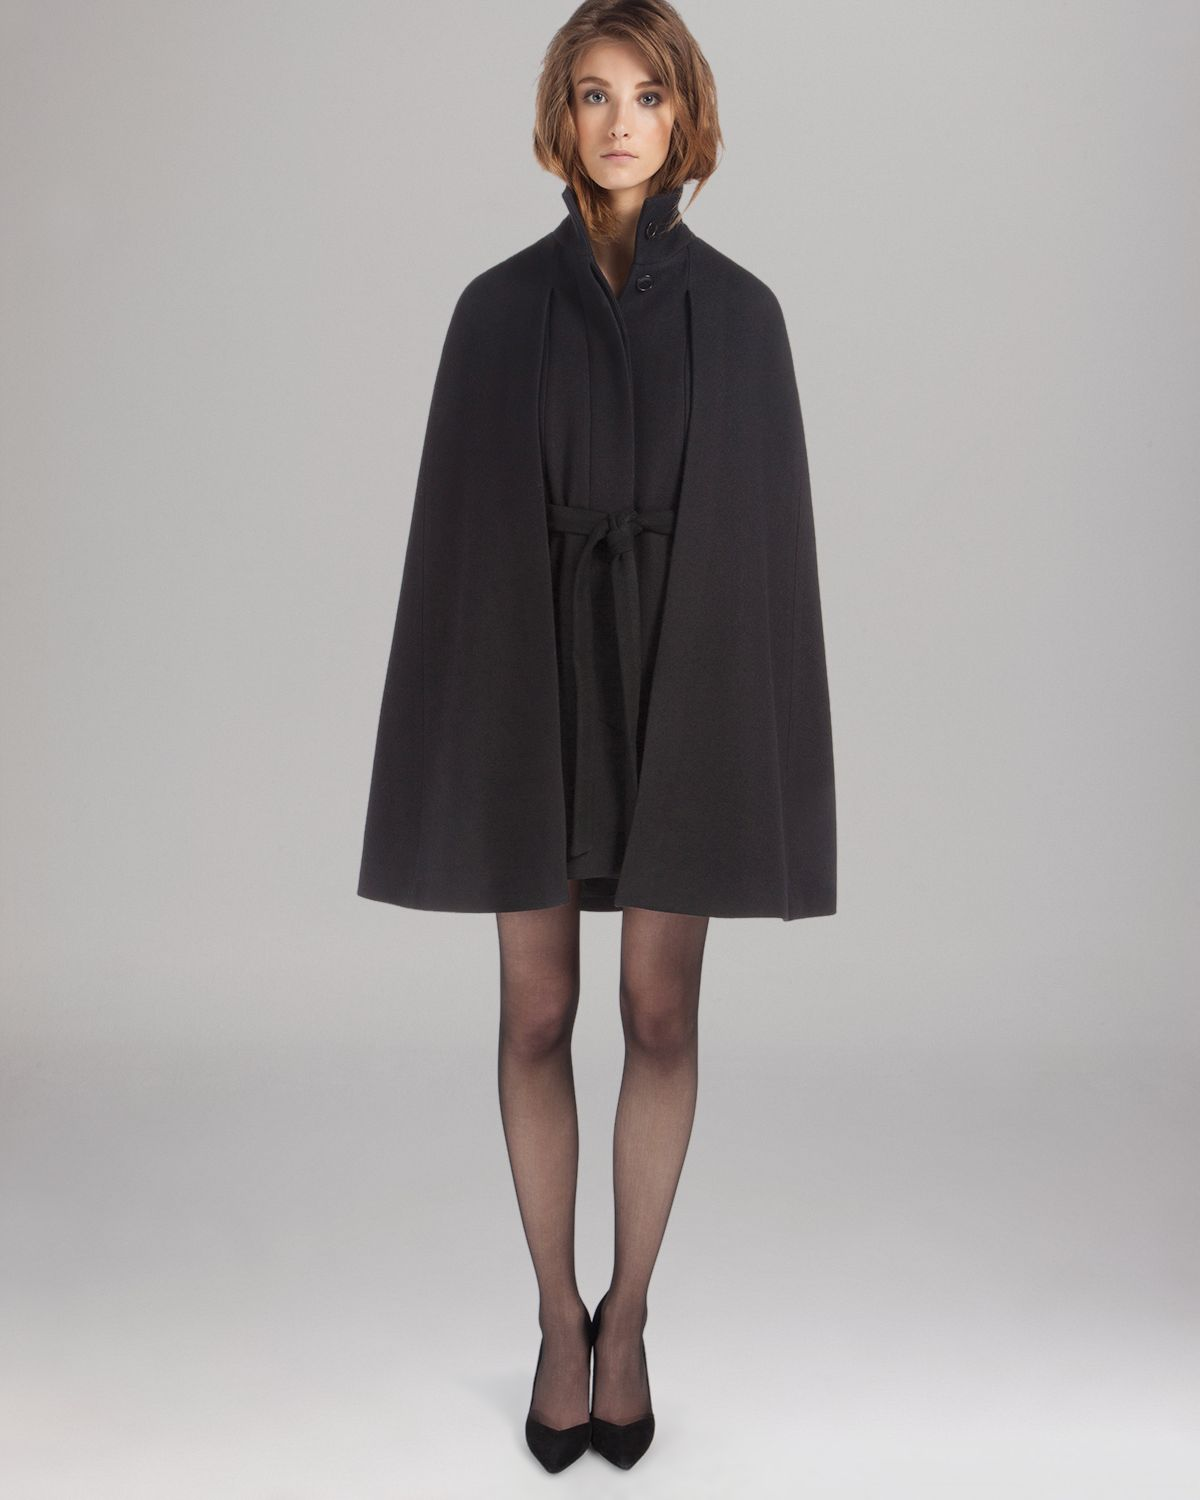 Maje Cape Coat in Black | Lyst